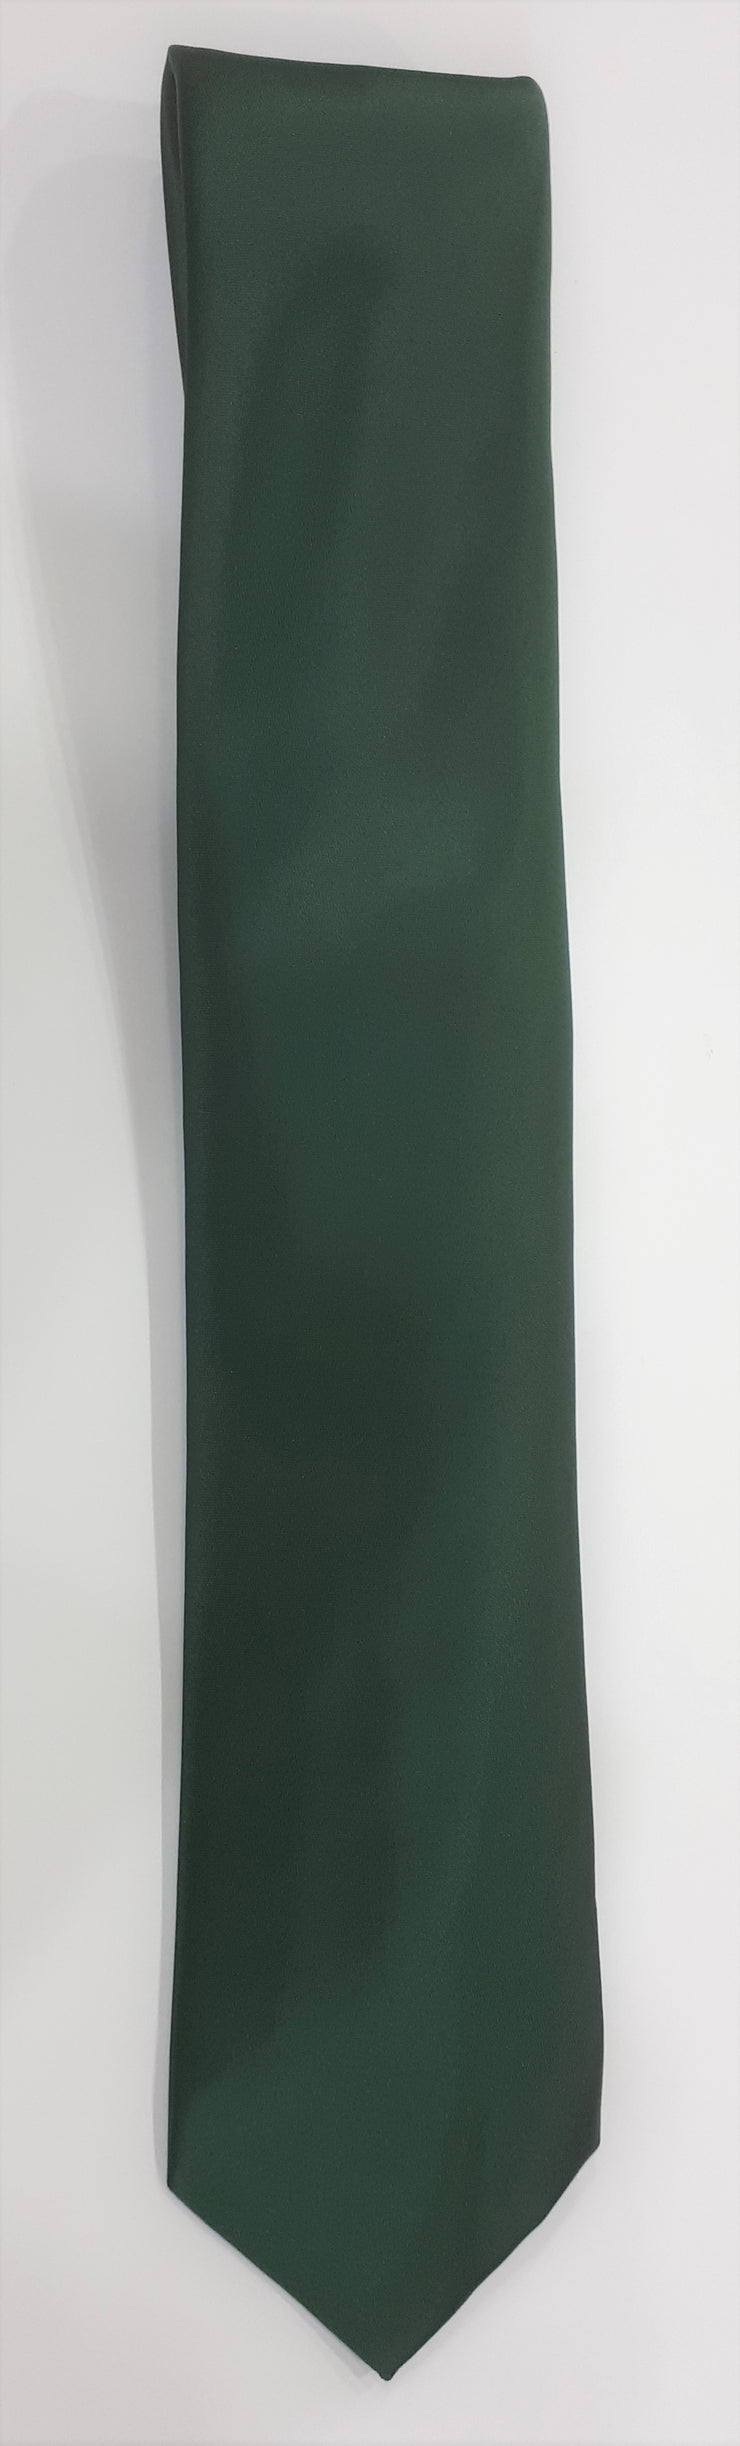 FORMAL SATIN TIE GREEN